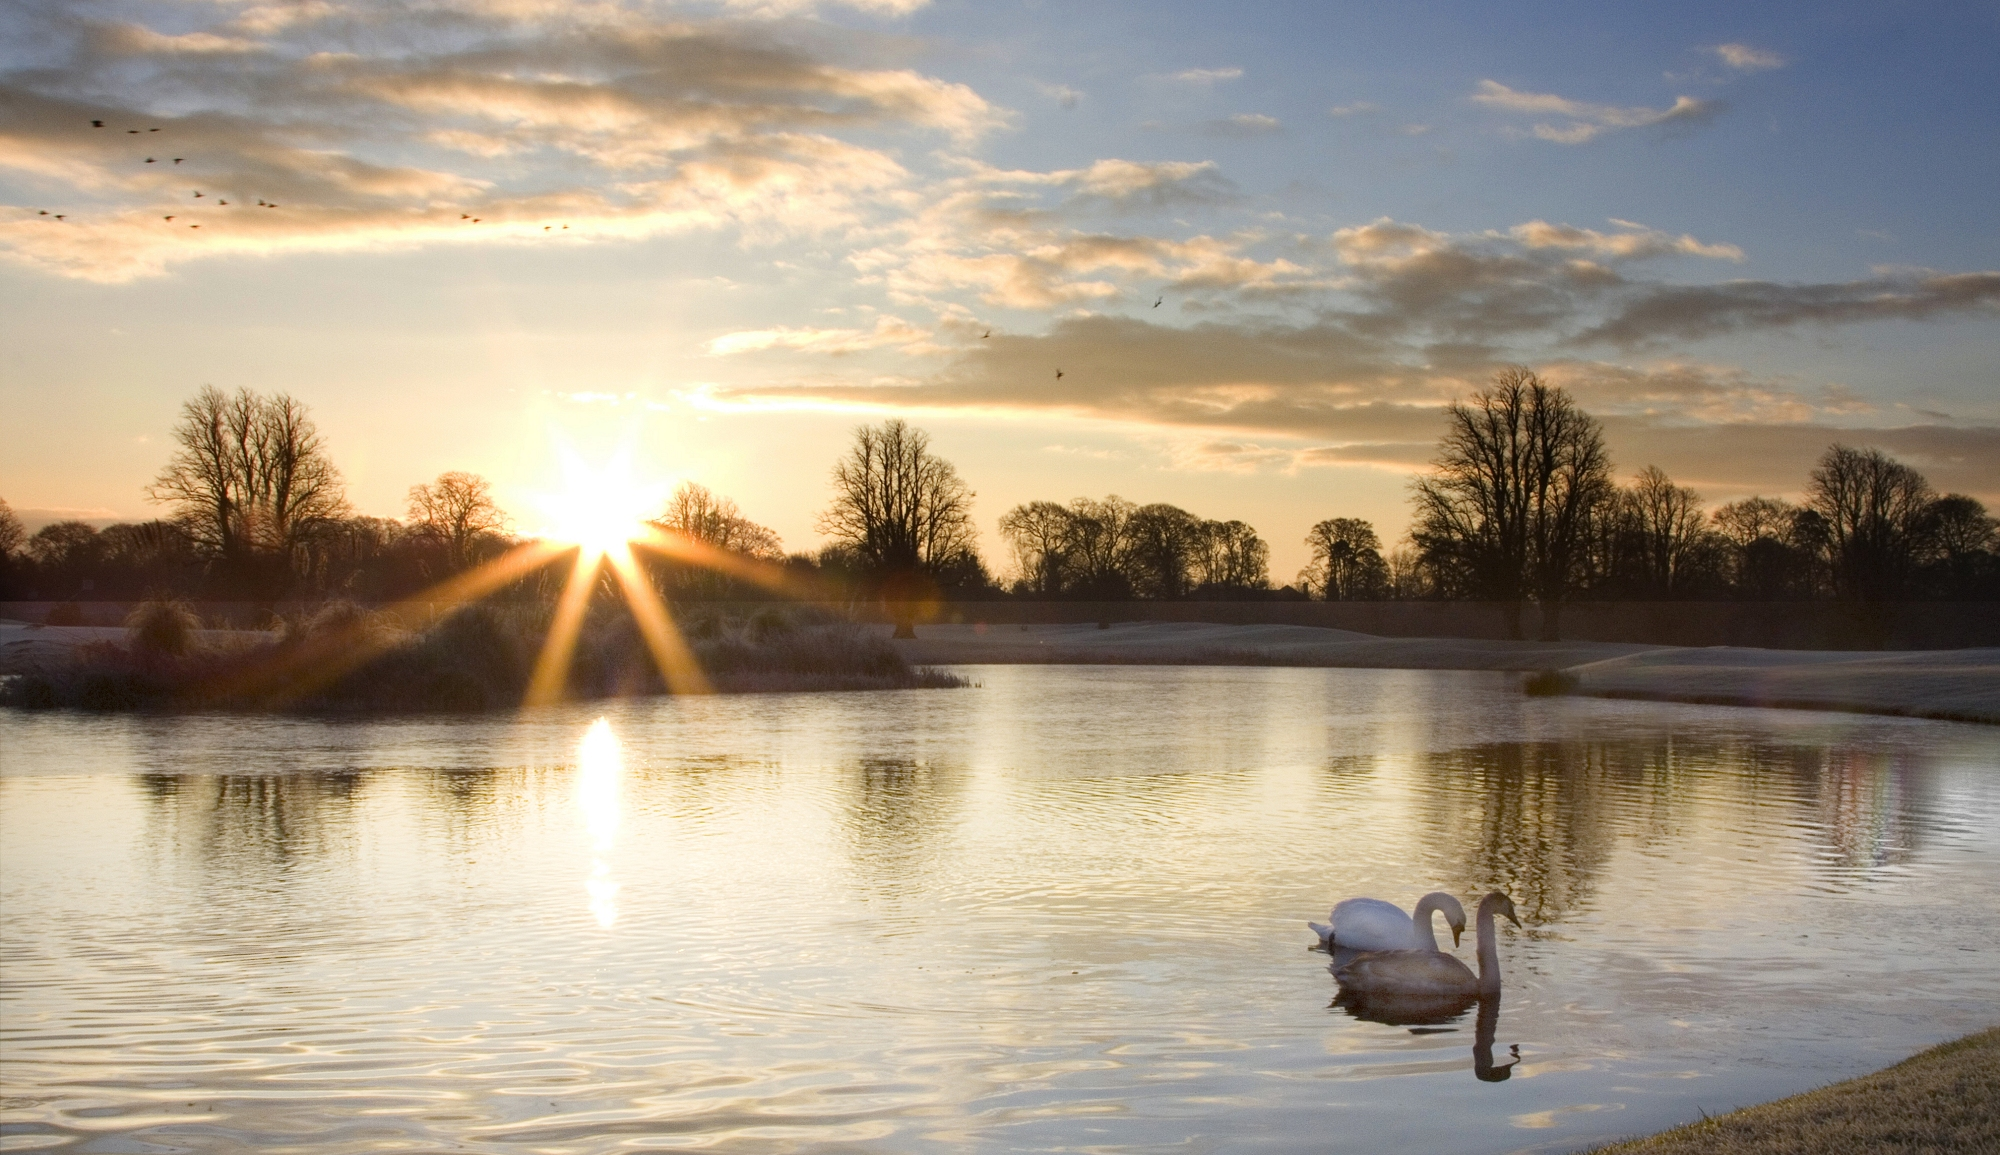 Golden Hour Photography, Morning, Swans on Lake during Golden Hour Photo